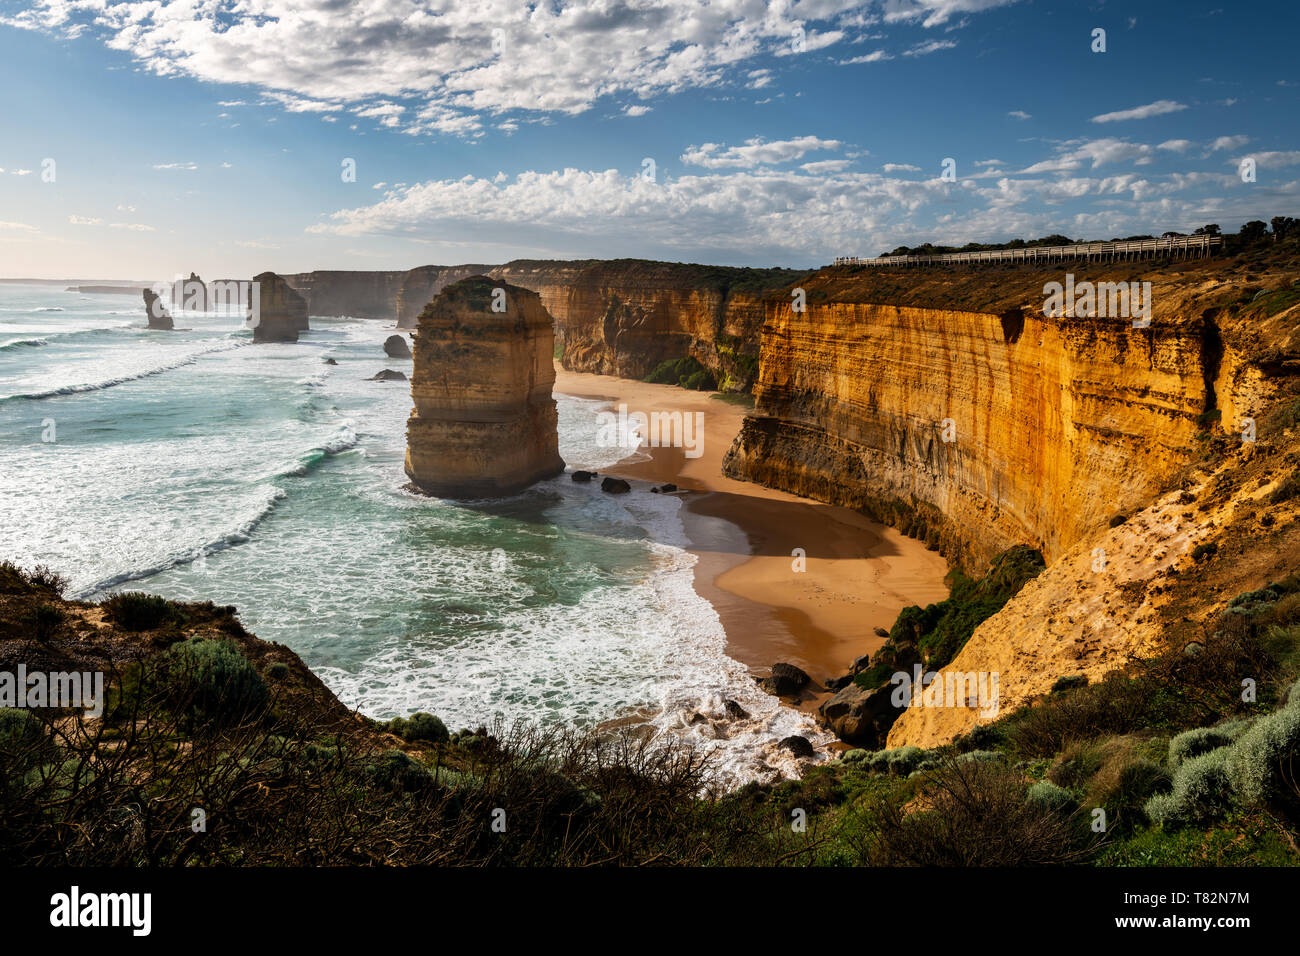 The famous Twelve Apostles in Port Campbell National Park at the Great Ocean Road. Stock Photo